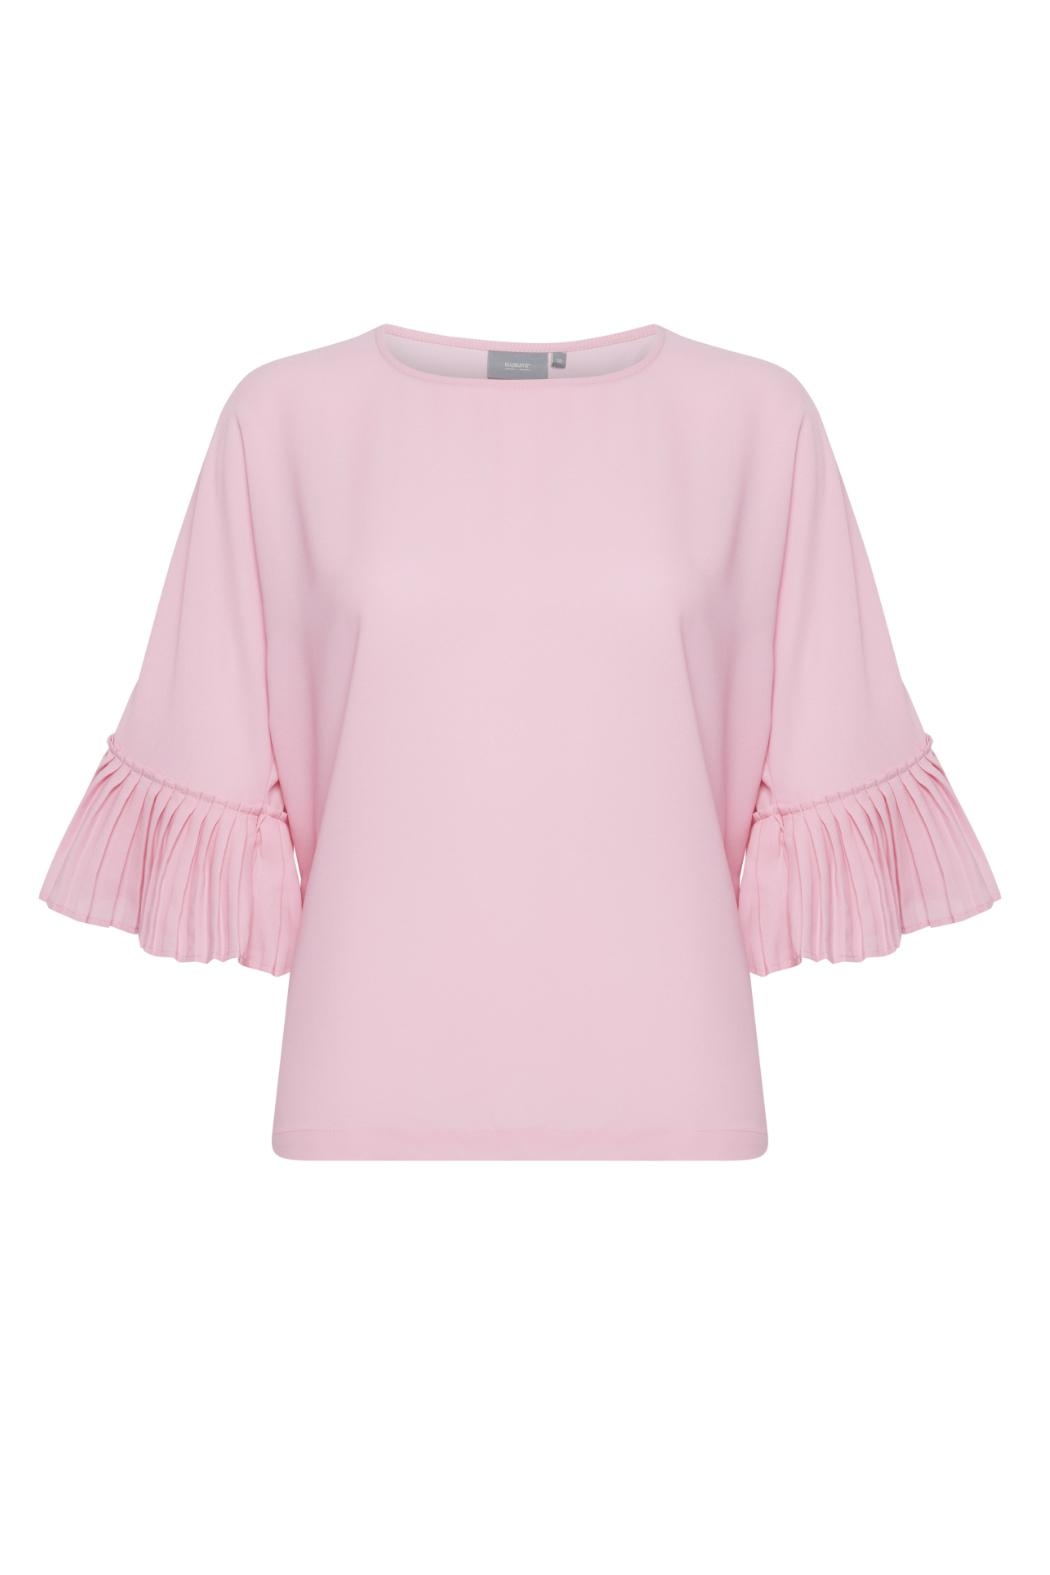 B.young Pretty Pink Blouse - Main Image